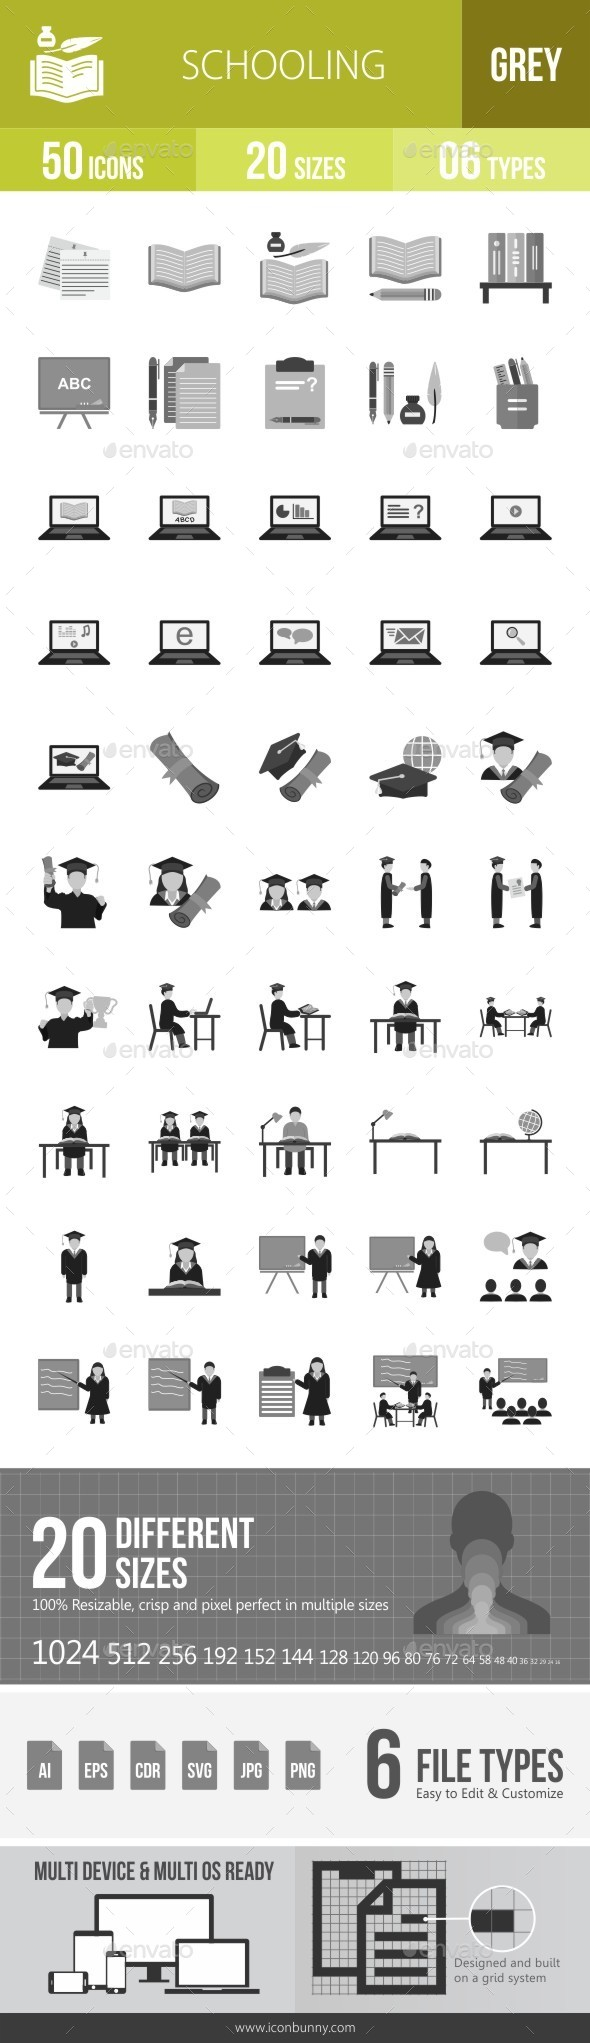 Schooling Greyscale Icons - Icons